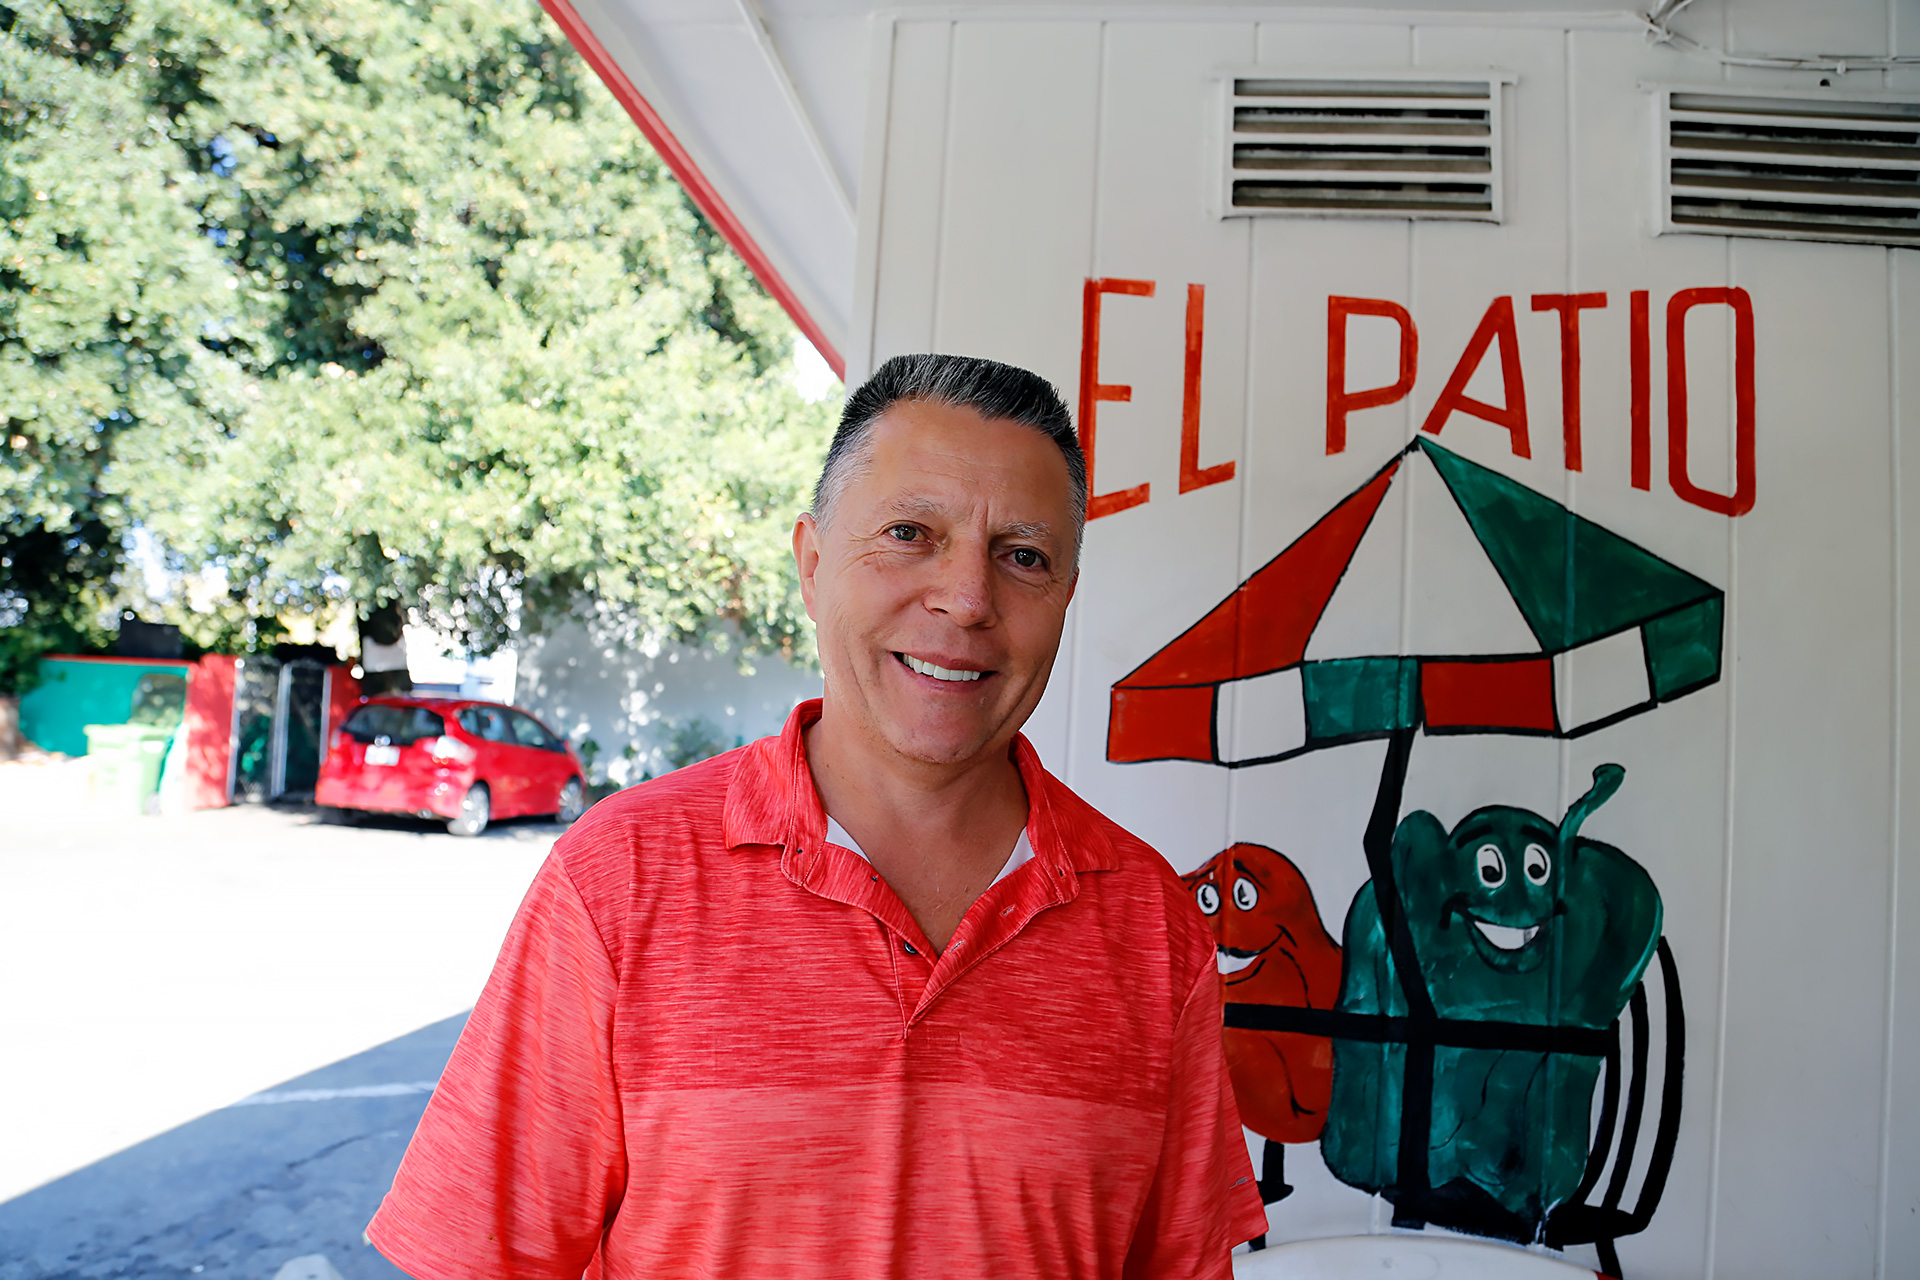 Sergio Ochoa, owner of El Patio in Santa Rosa.